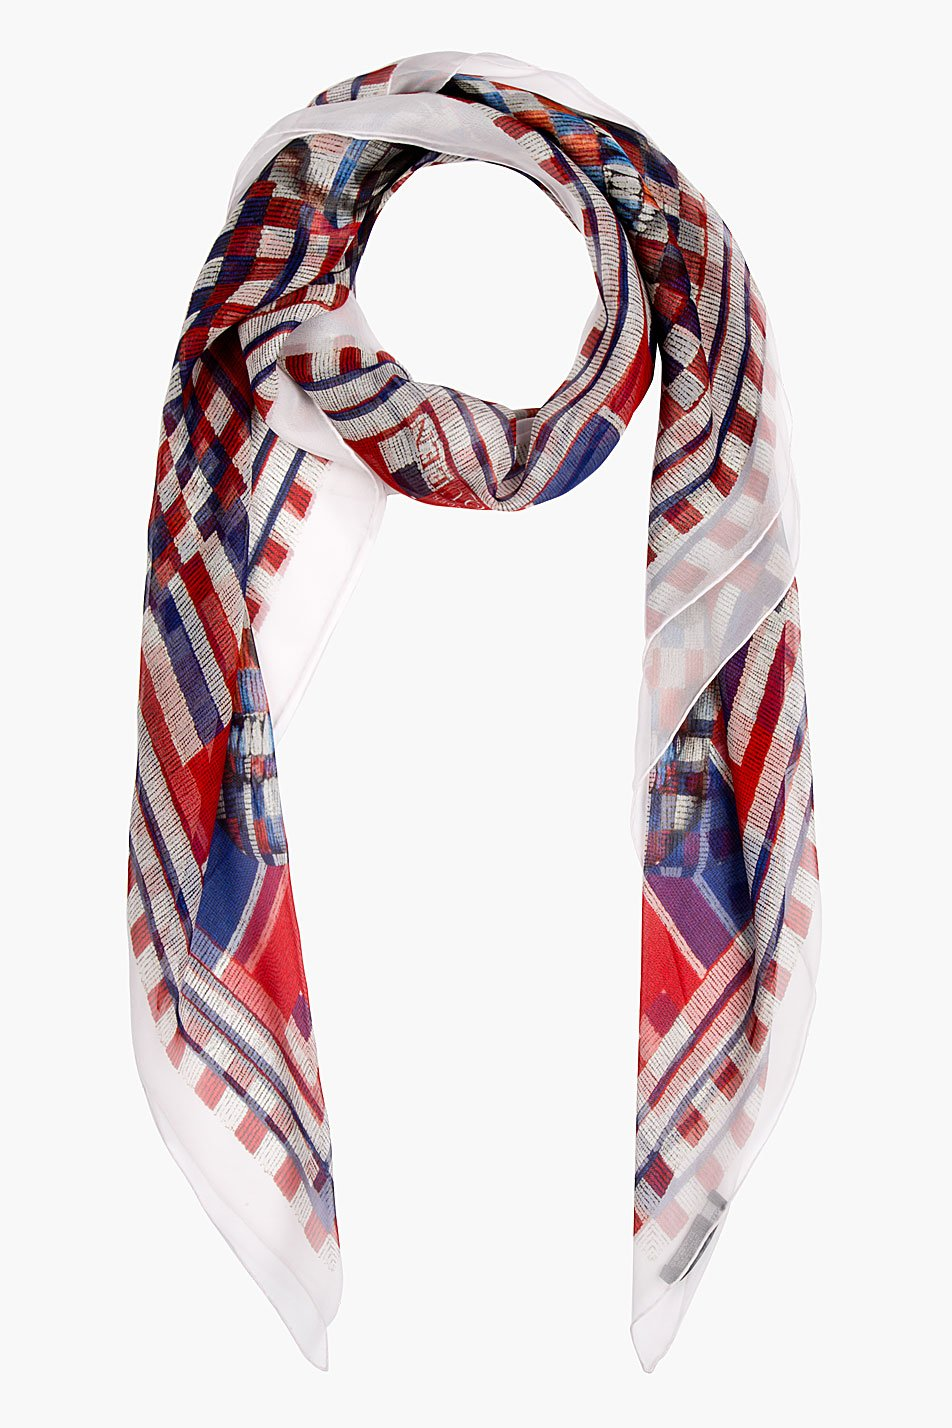 Blue jeans white pumps red beaded scarf inner coverneck b ready